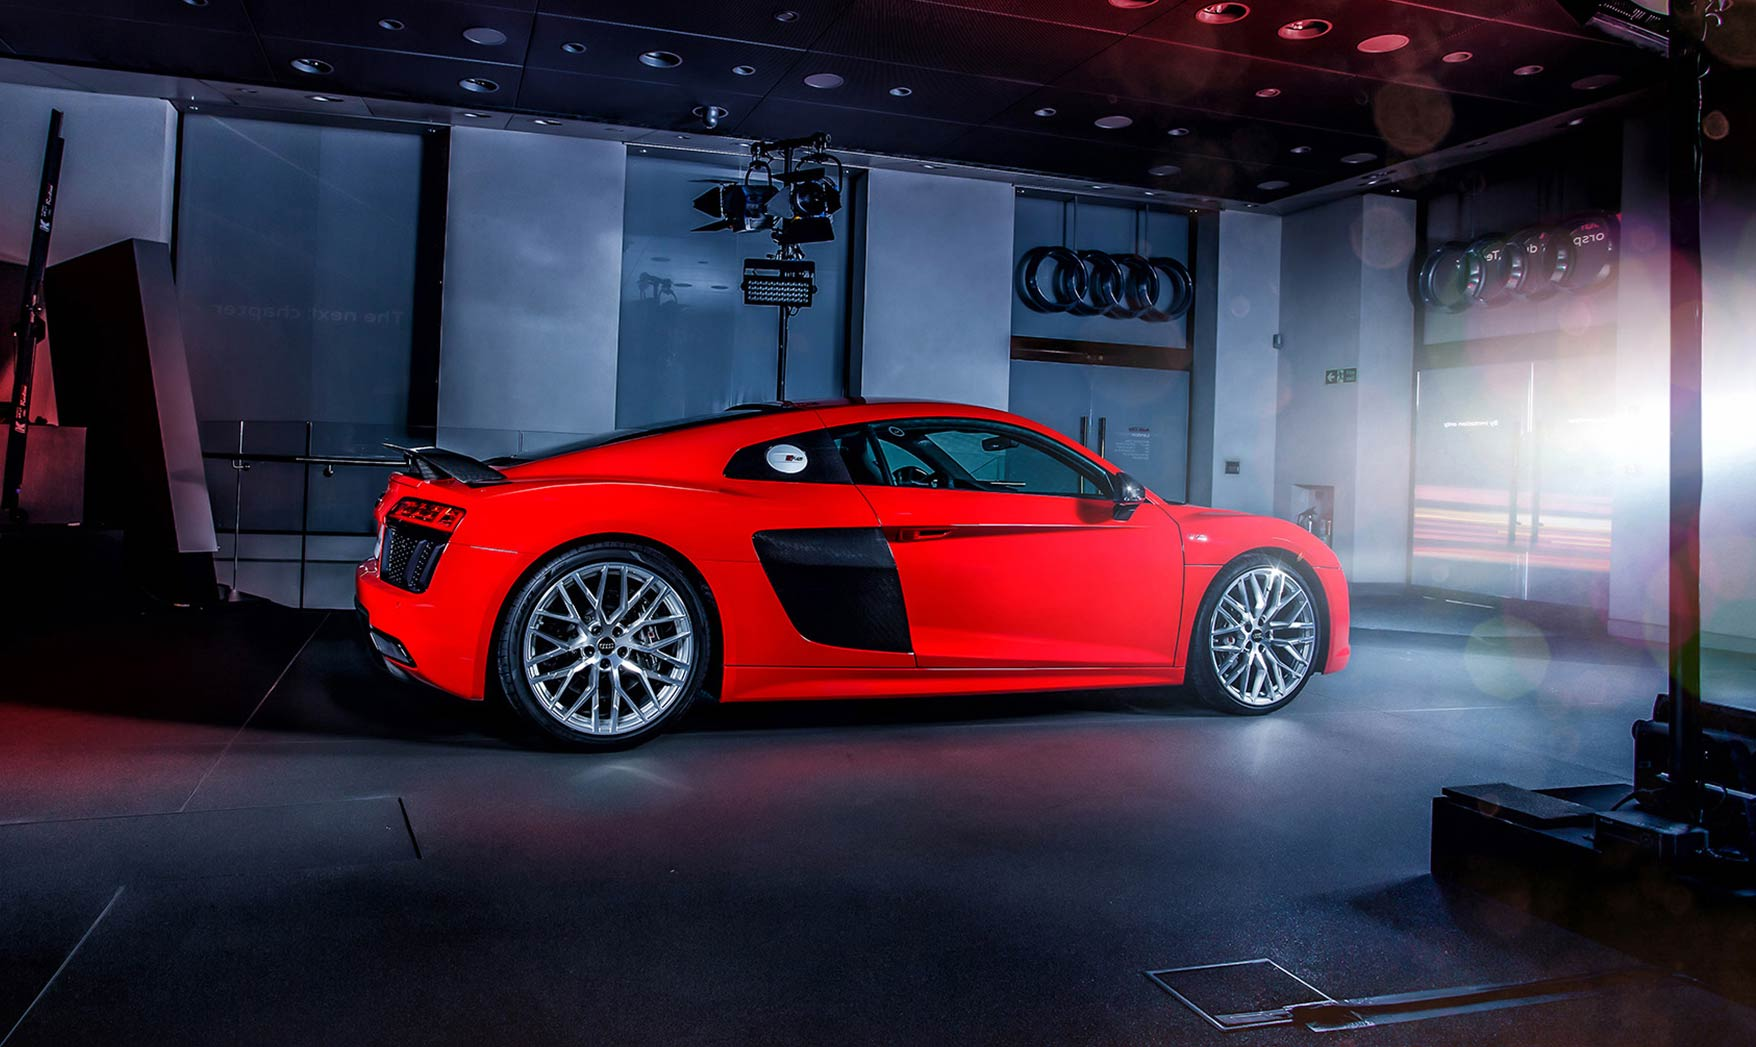 The new Audi R8 supercar